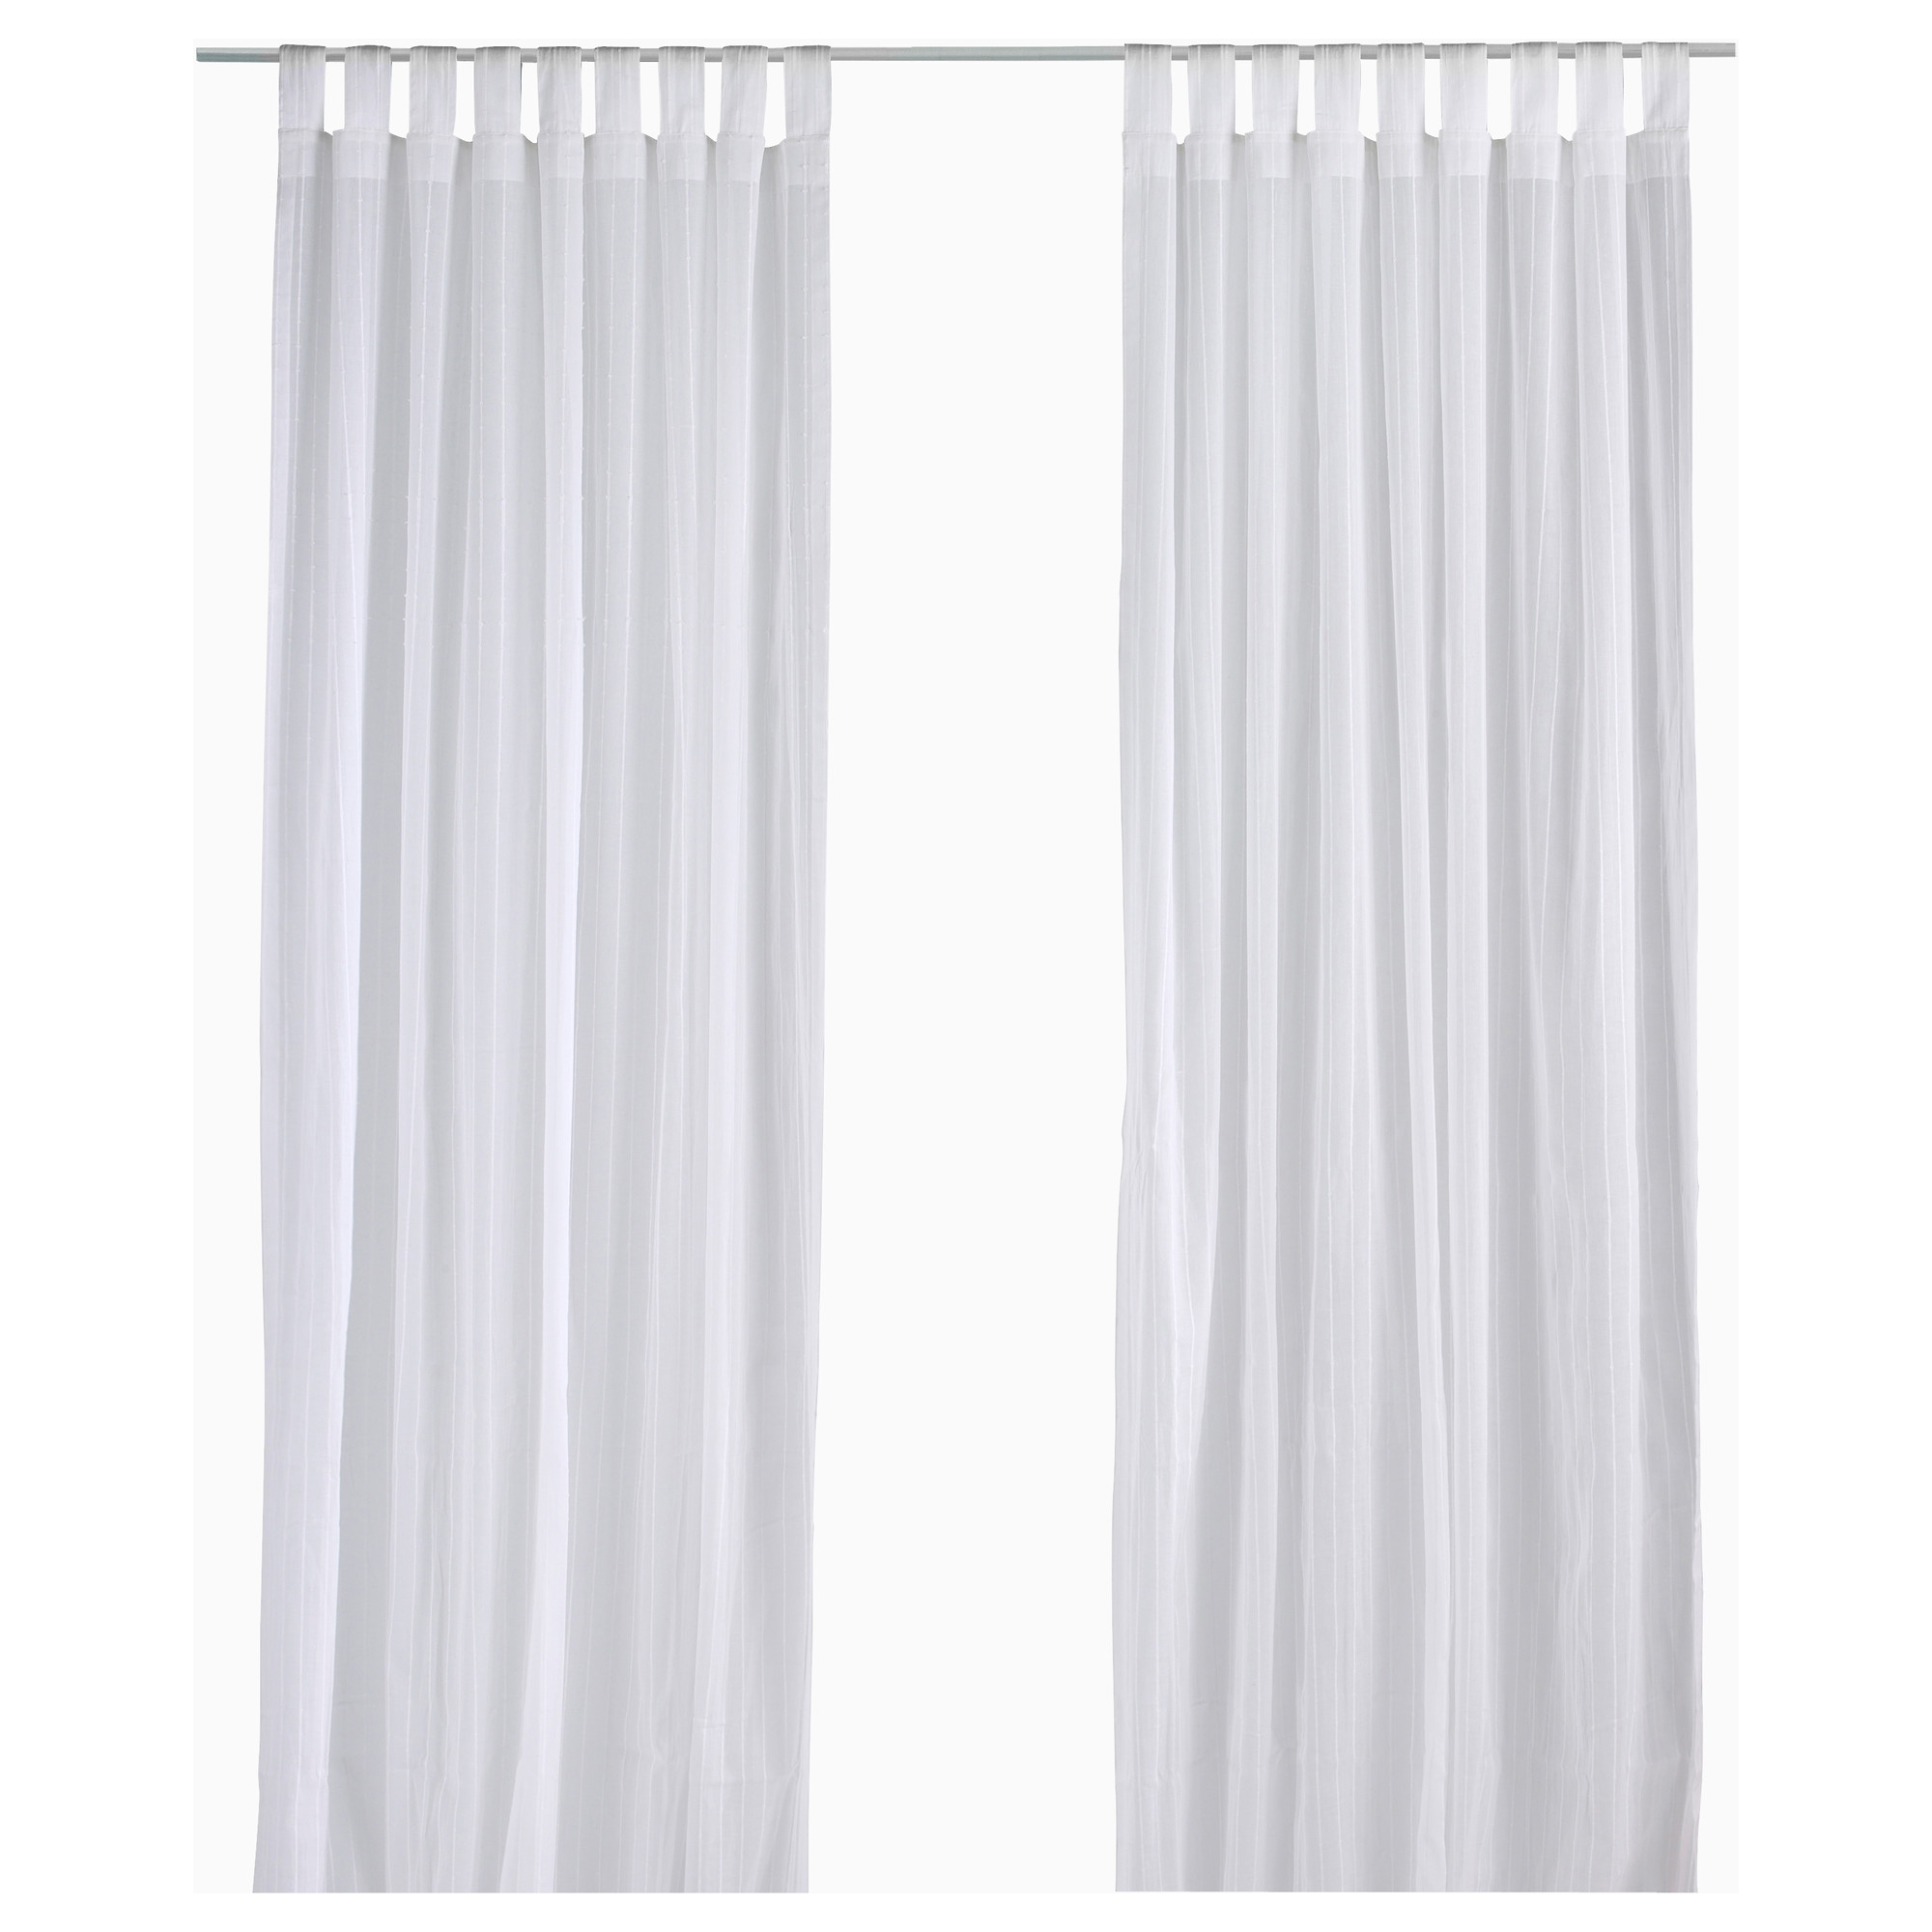 Matilda Sheer Curtains 1 Pair Ikea With Regard To White Sheer Cotton Curtains (Image 7 of 15)